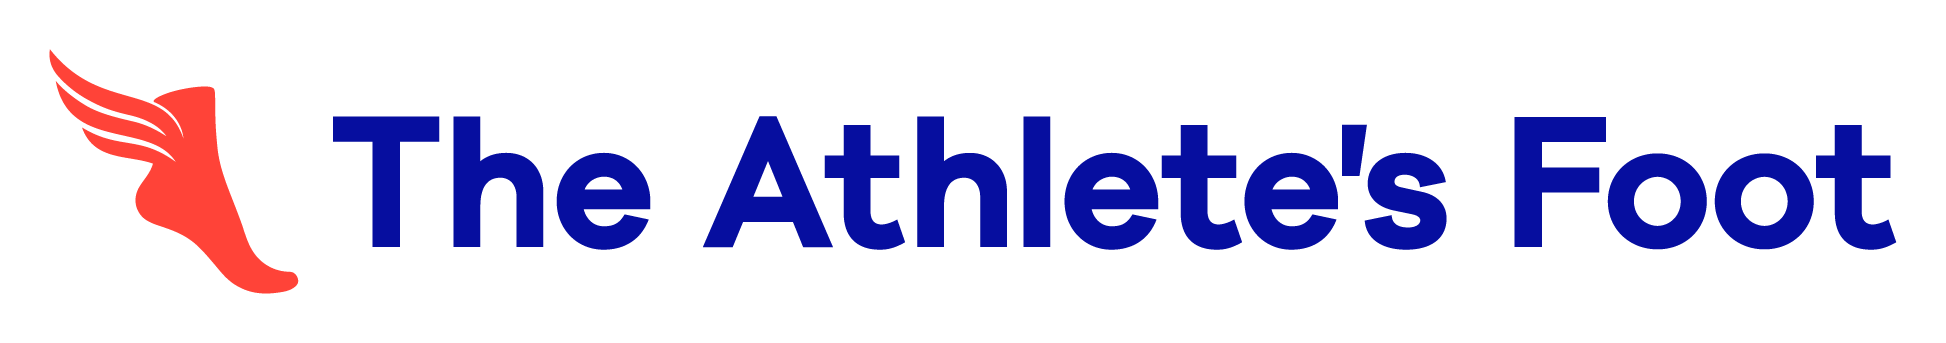 athletesfoot